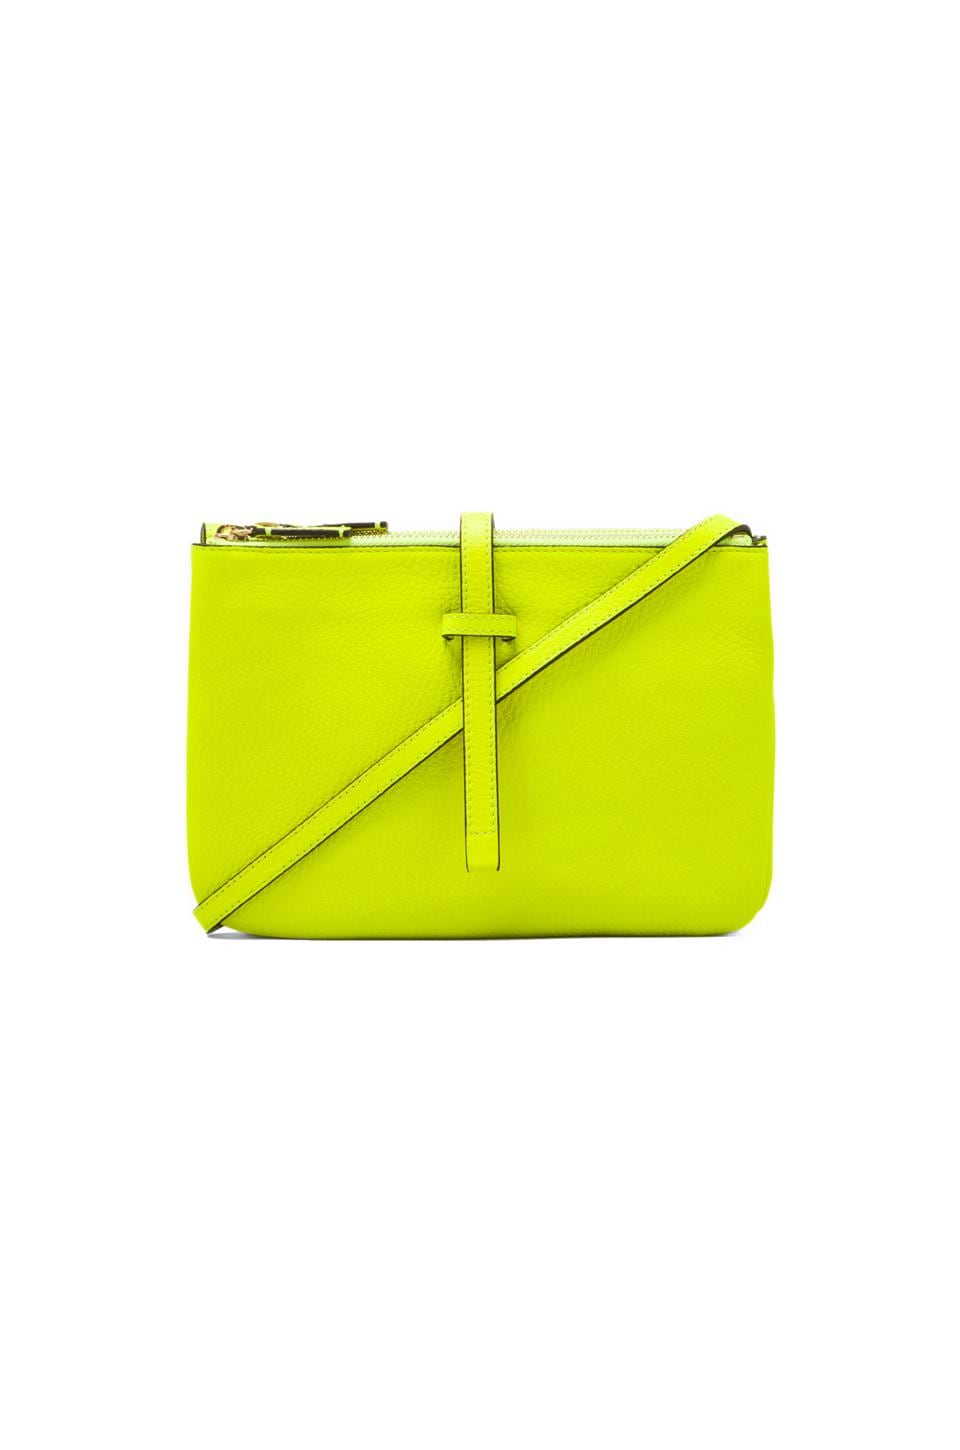 Annabel Ingall Jojo Crossbody in Citrus